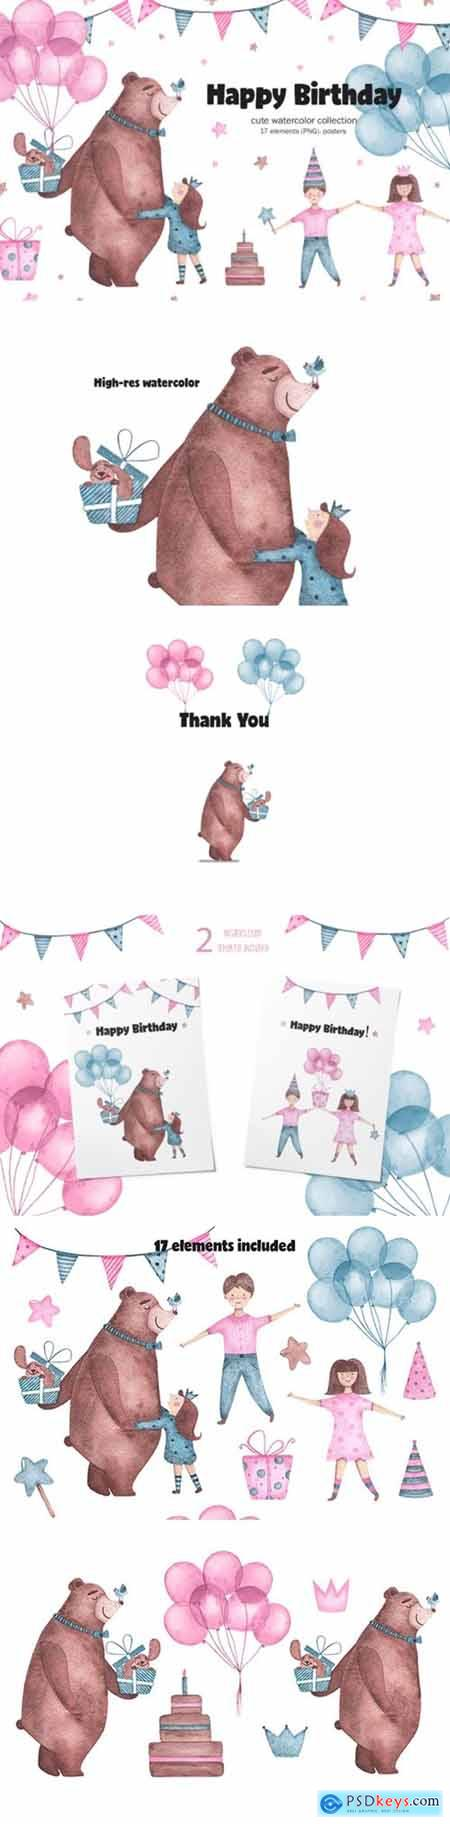 Happy Birthday - Watercolor Clipart 2194090